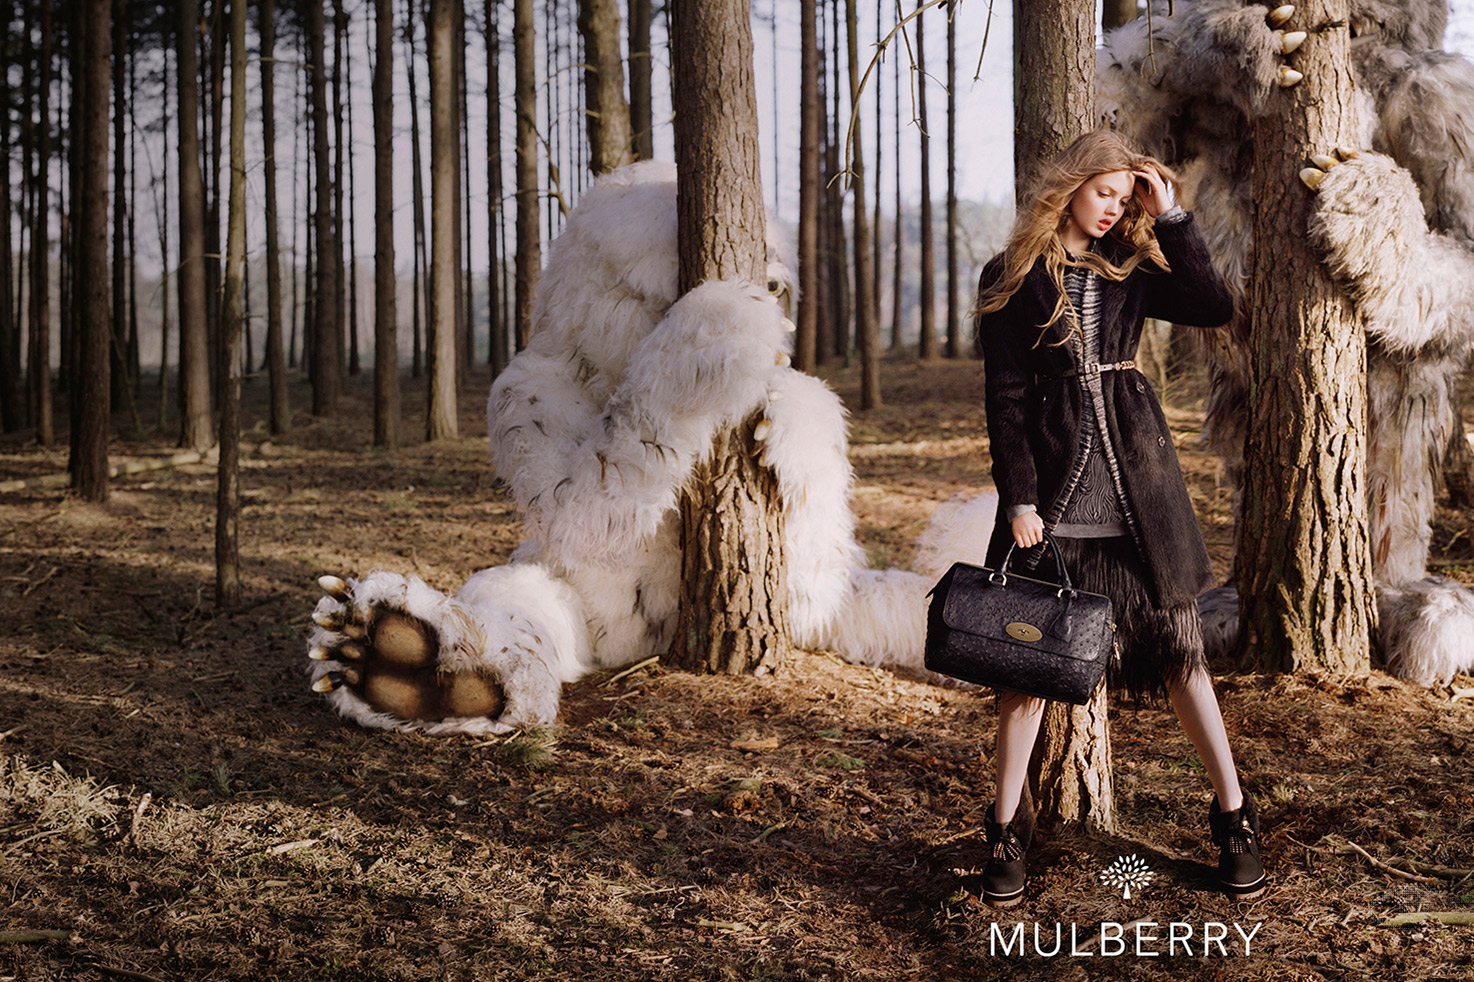 Mulberry: The Rise